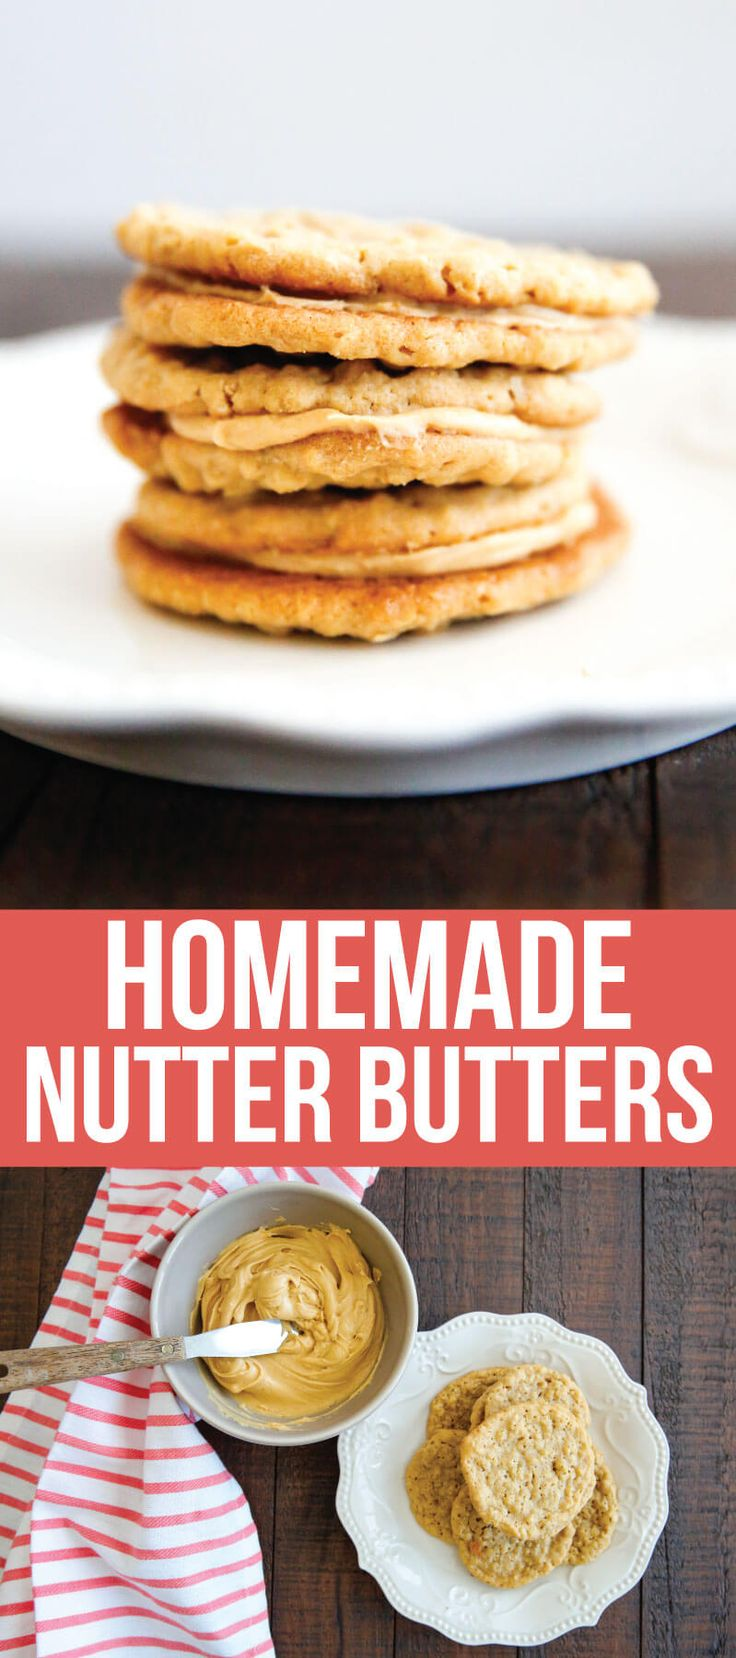 Homemade Nutter Butters- these cookies are like whoopie pies with all things peanut butter. They melt in your mouth!  I made this recipe while listening to a favorite book on @audible! #AD